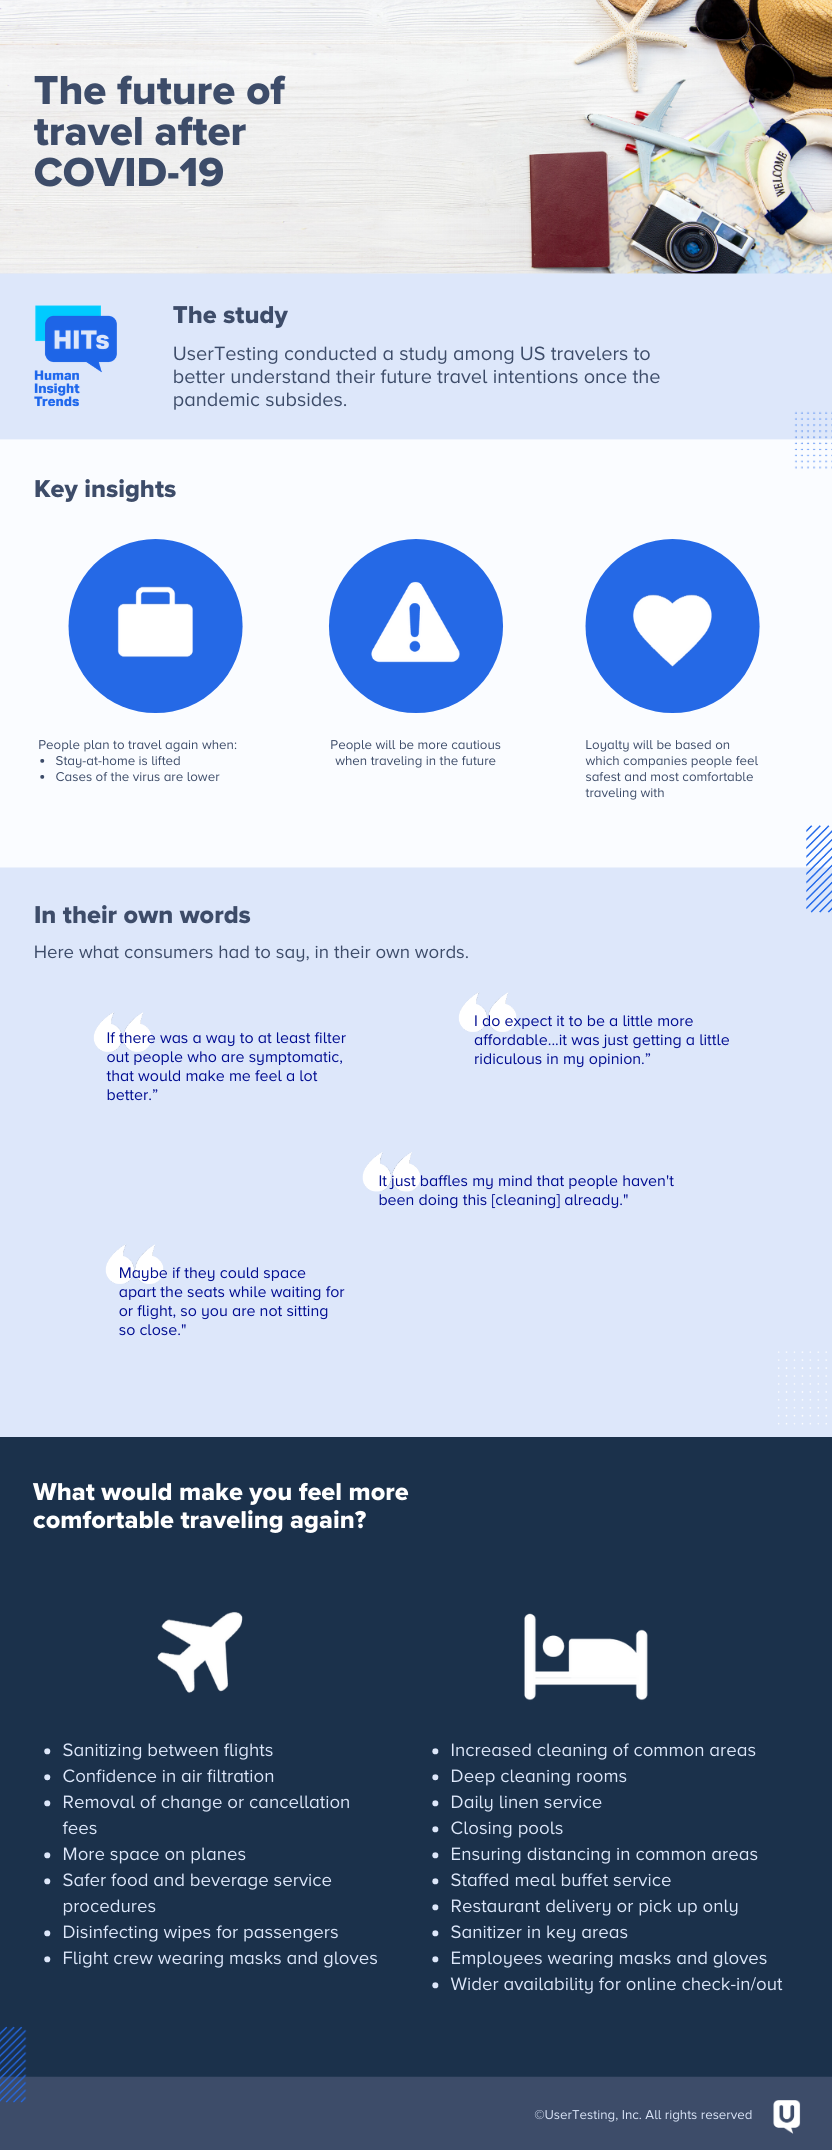 UserTesting HITs travel infographic